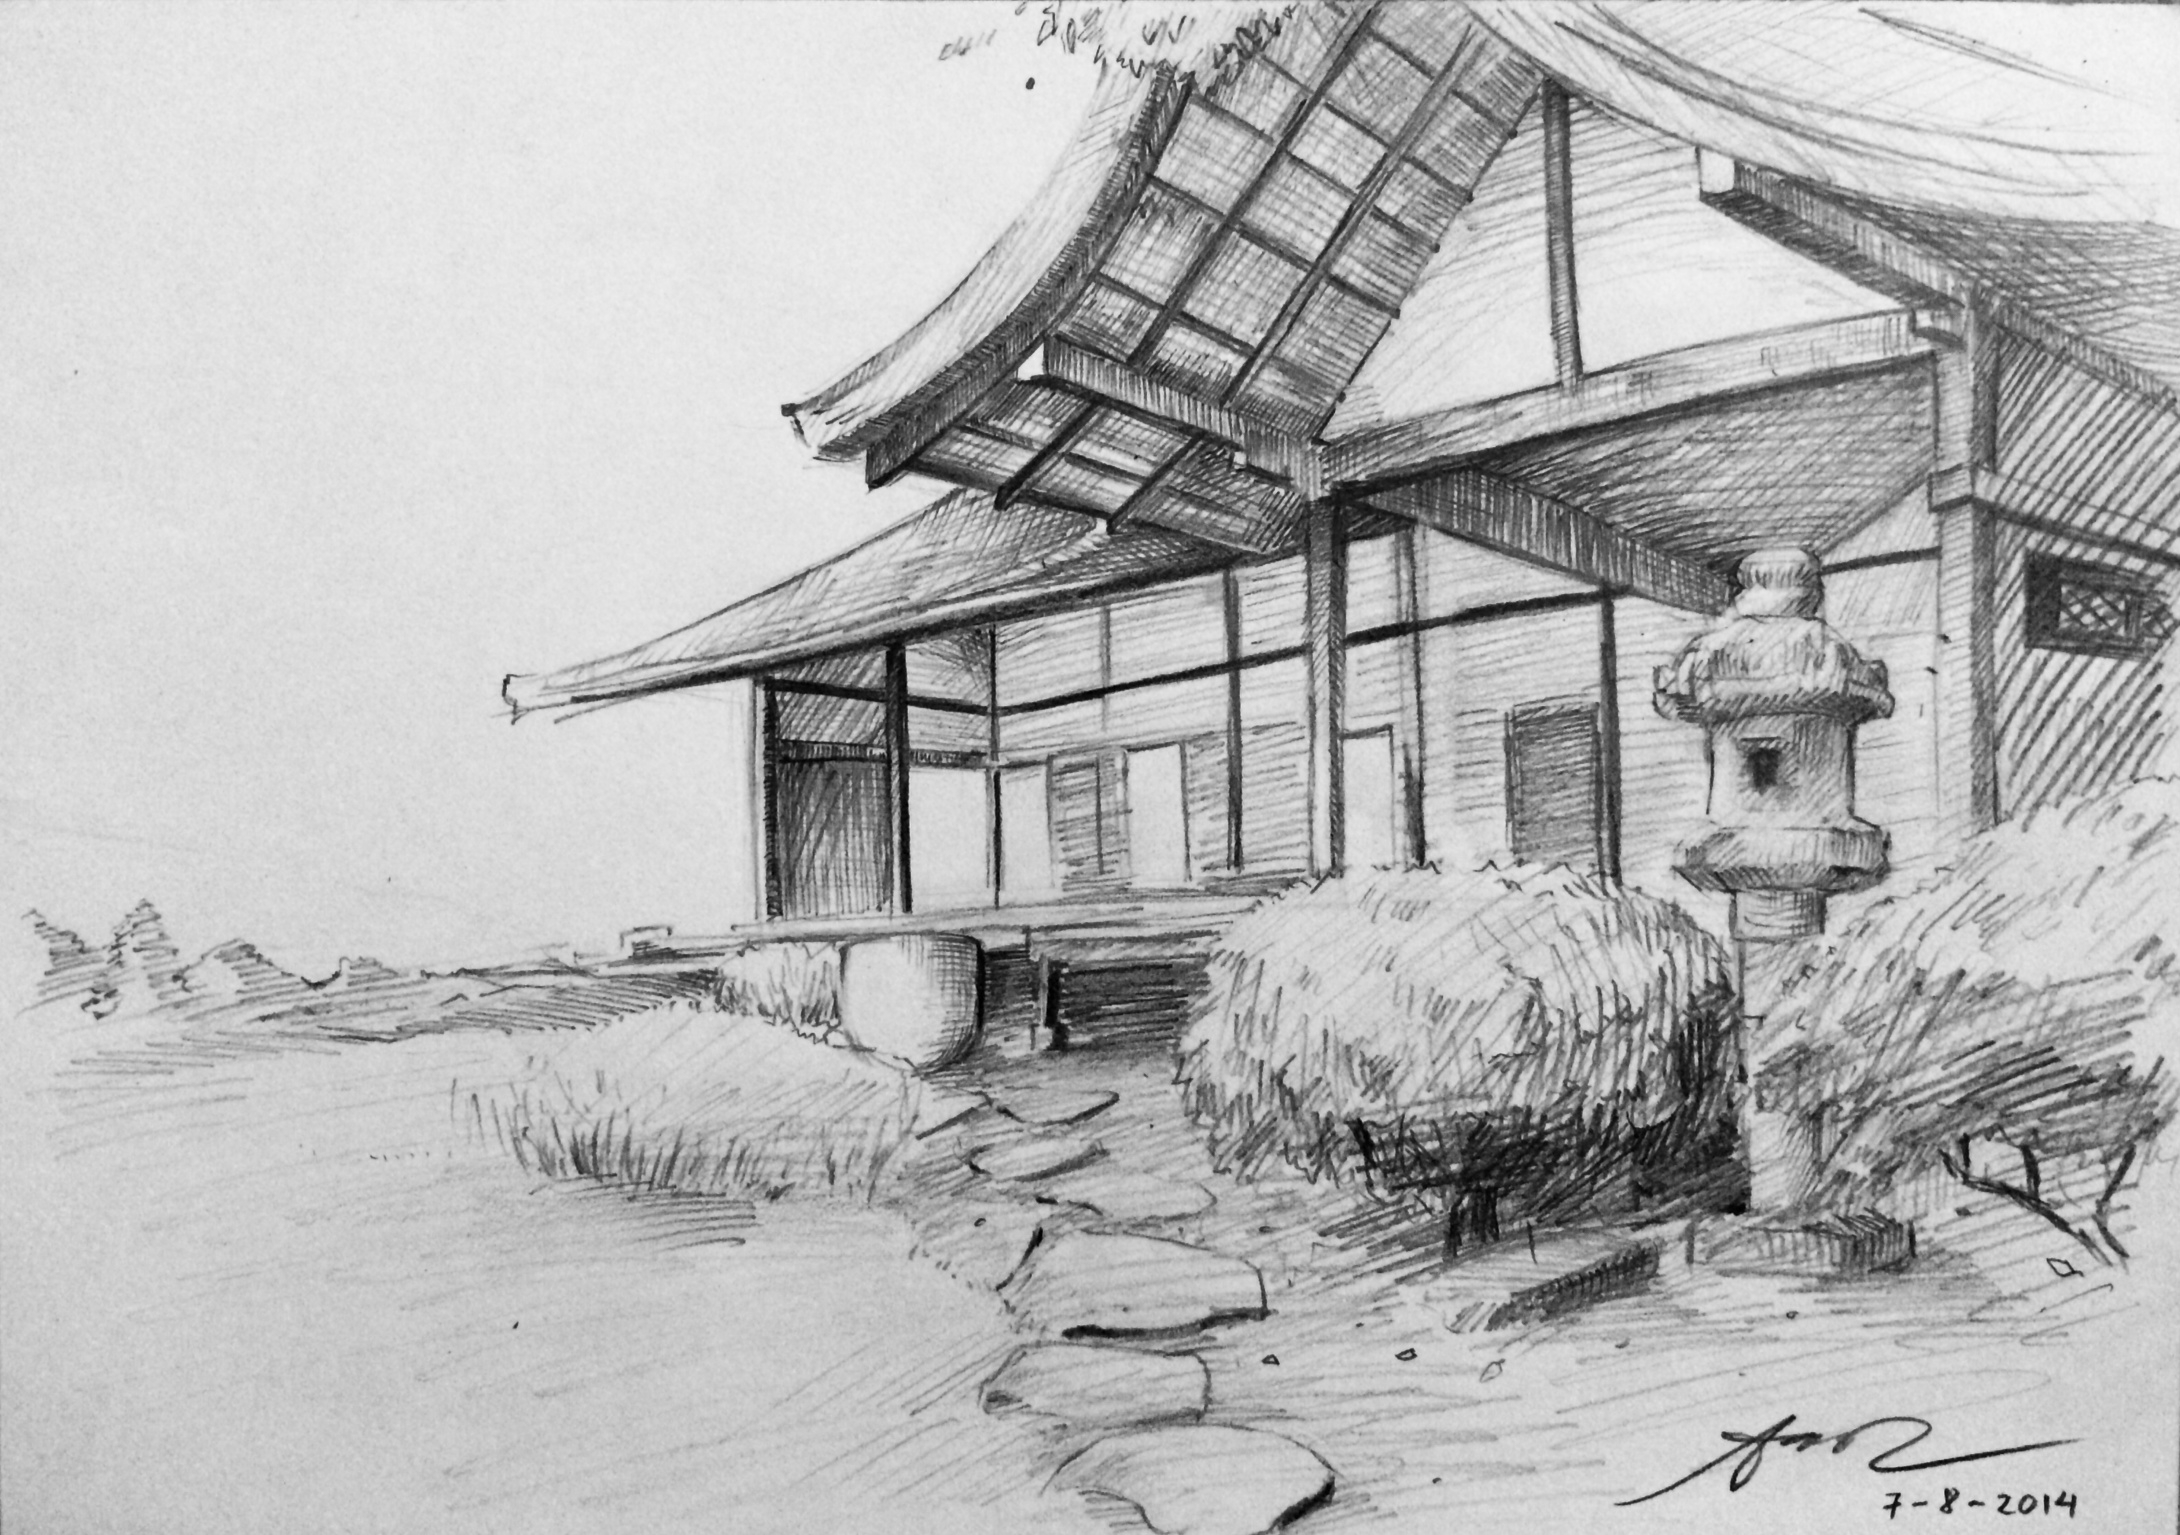 Modern Traditional Japanese House Sketchaoicancerius On Deviantart for Japanese Landscape Drawing